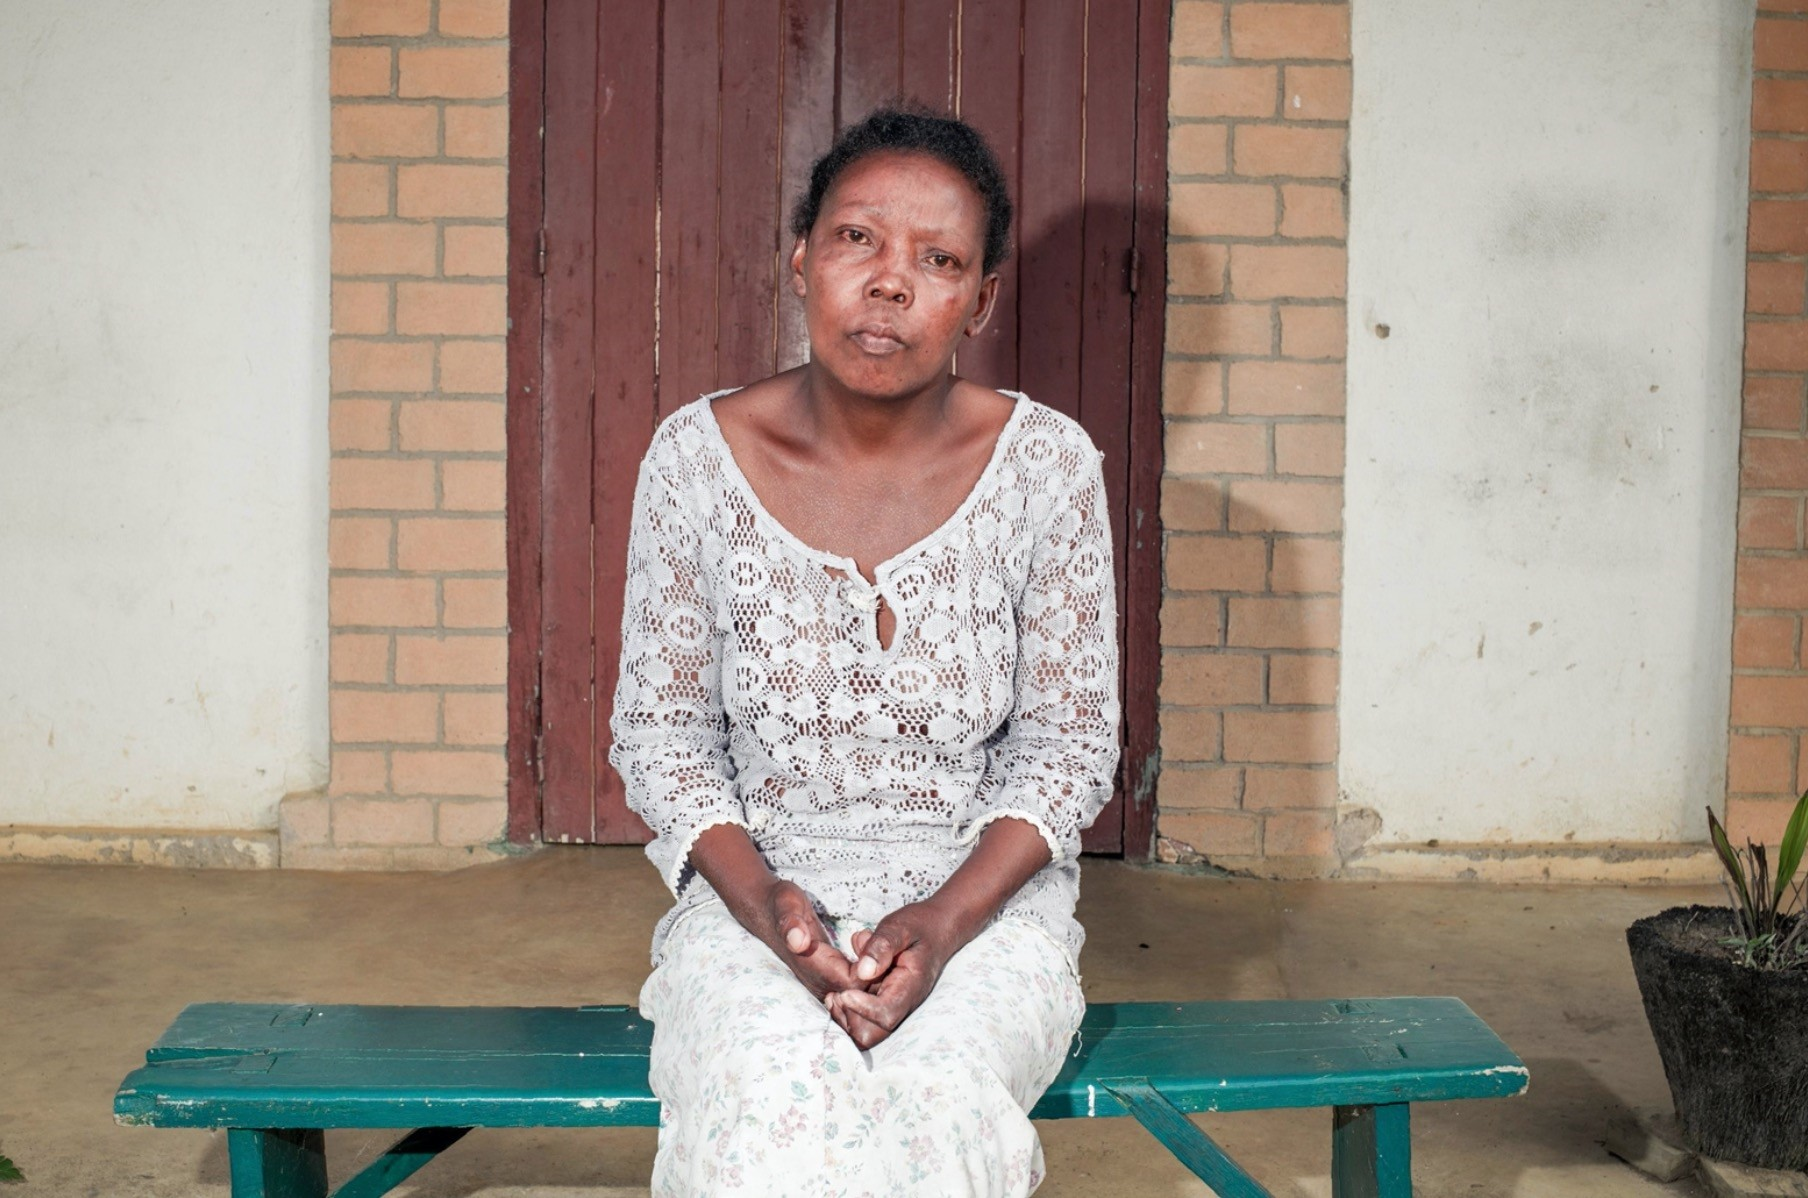 Although leprosy is not very contagious, Vololonirina Ranorovelo knows she will never be able to return to her village because her family and friends will reject her.